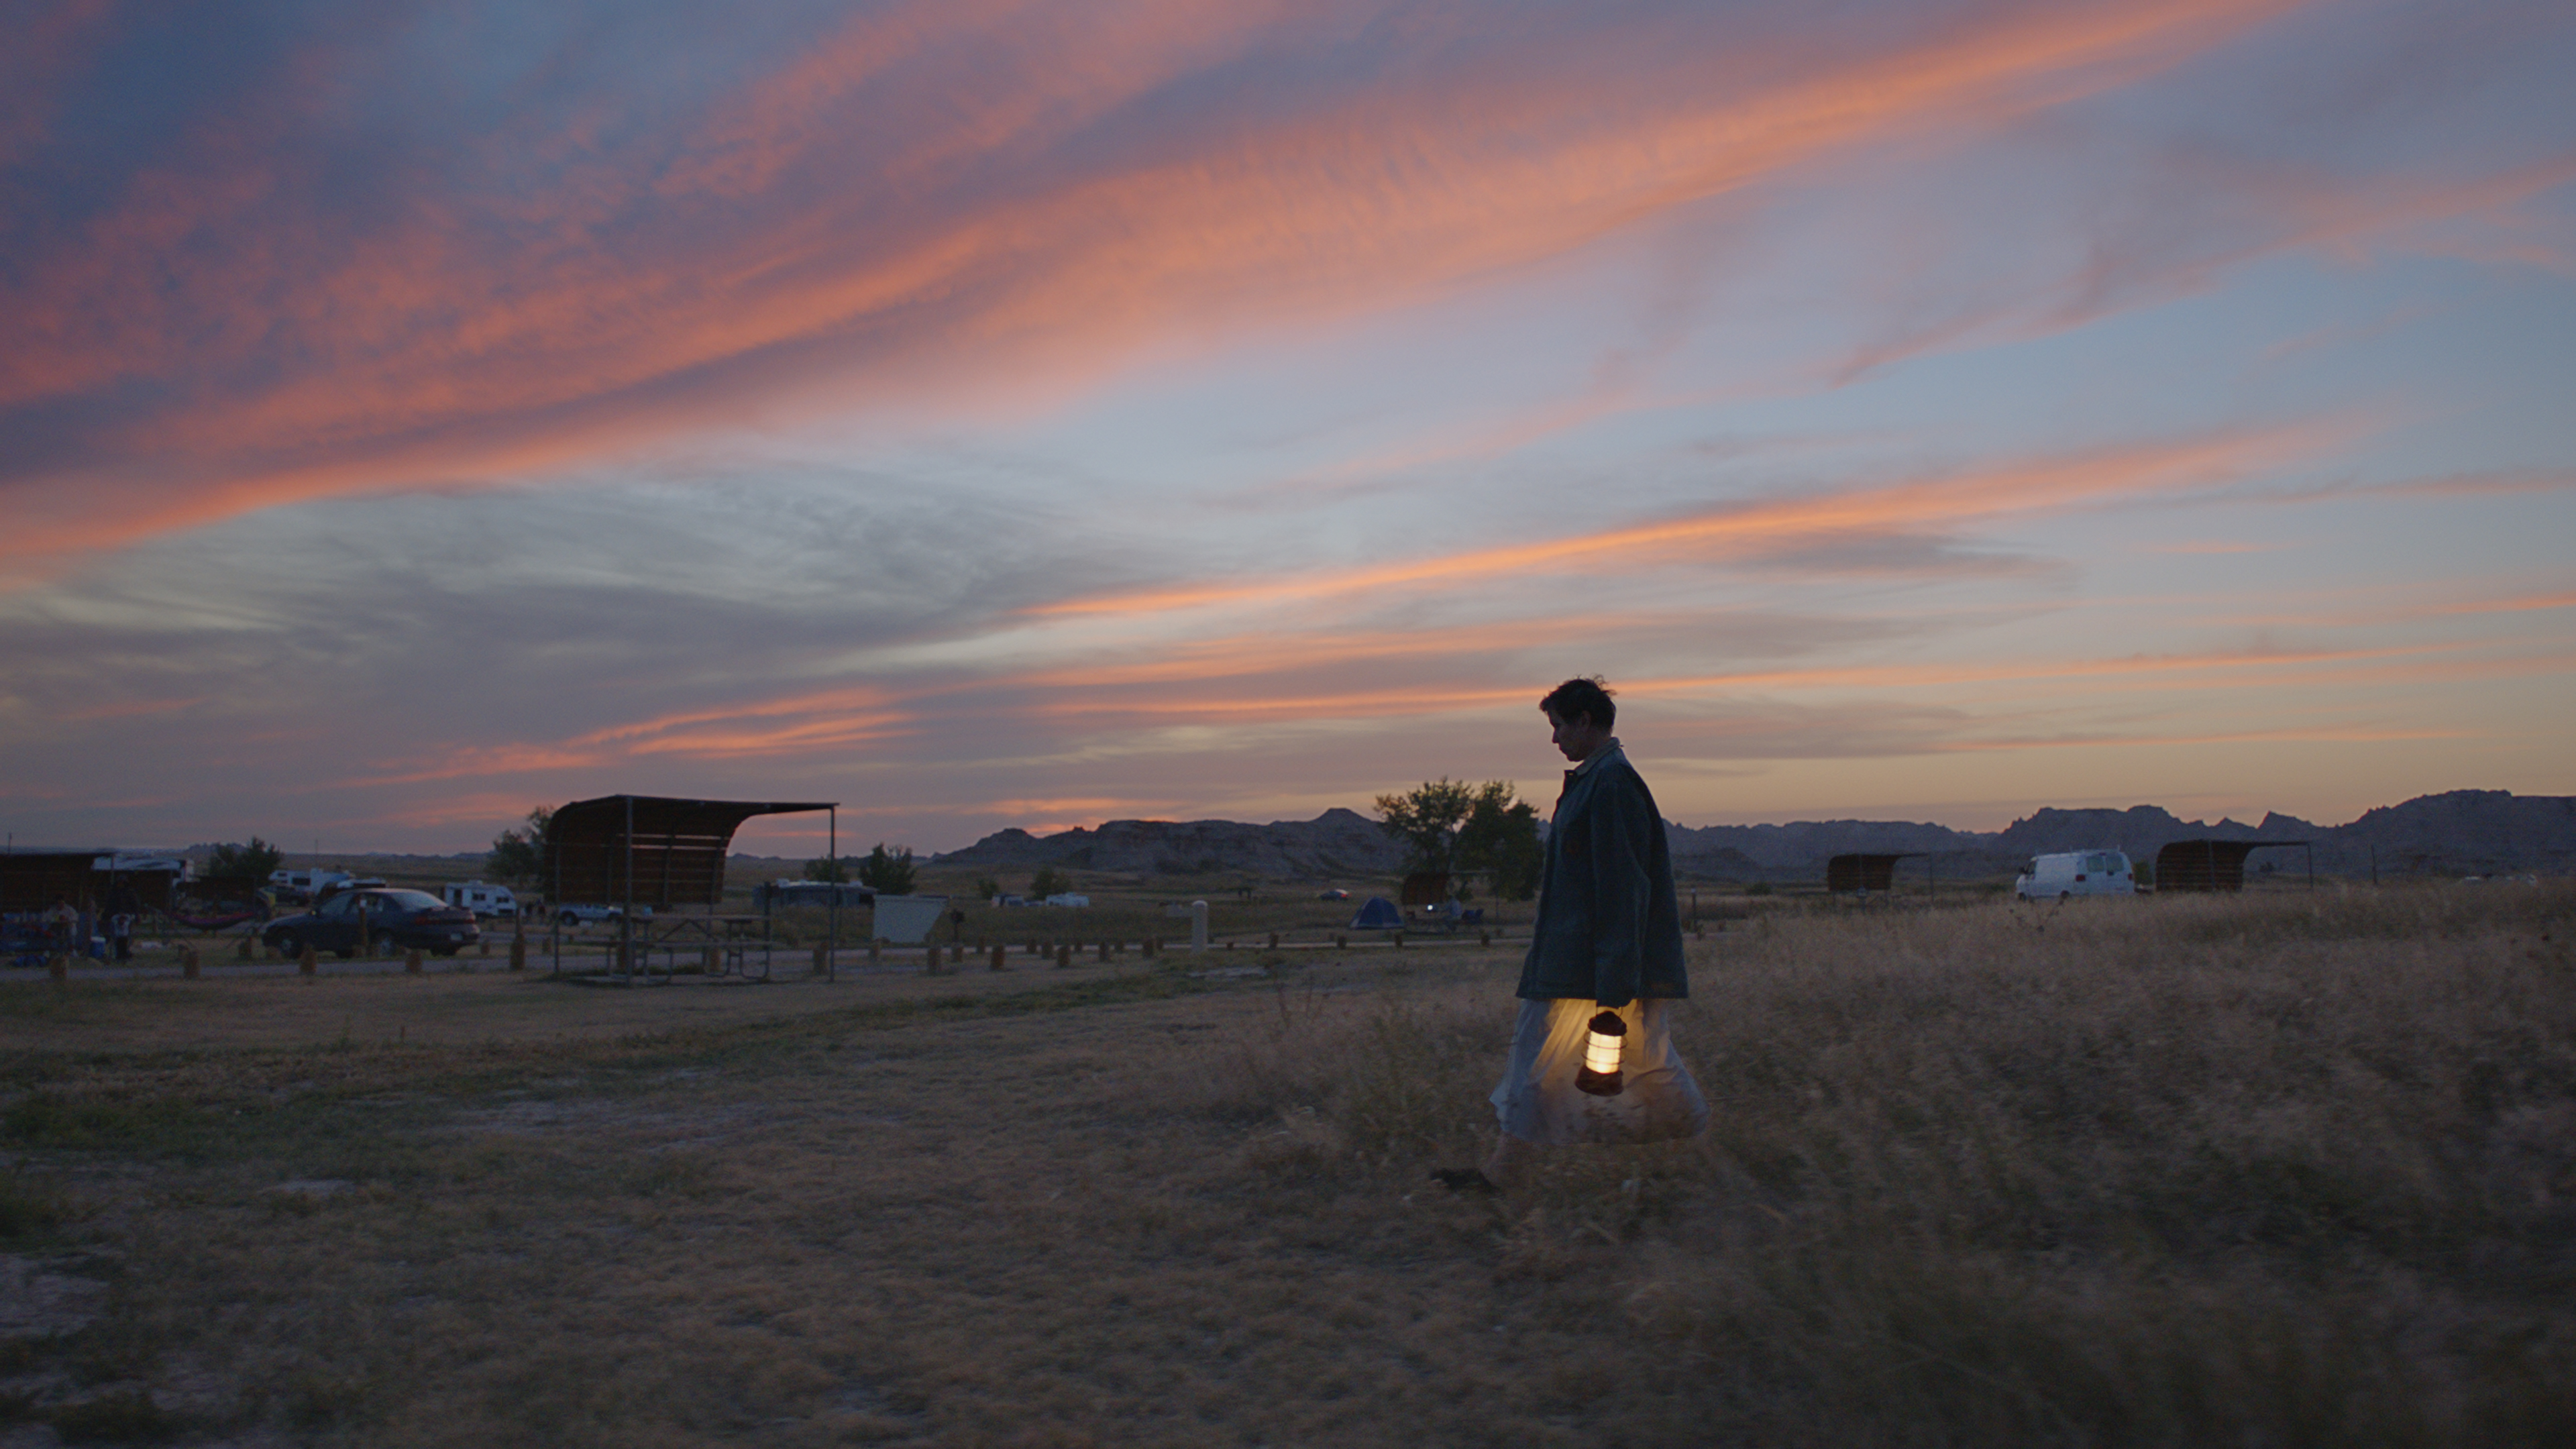 Frances Mcdormand walking with a lantern in her hand